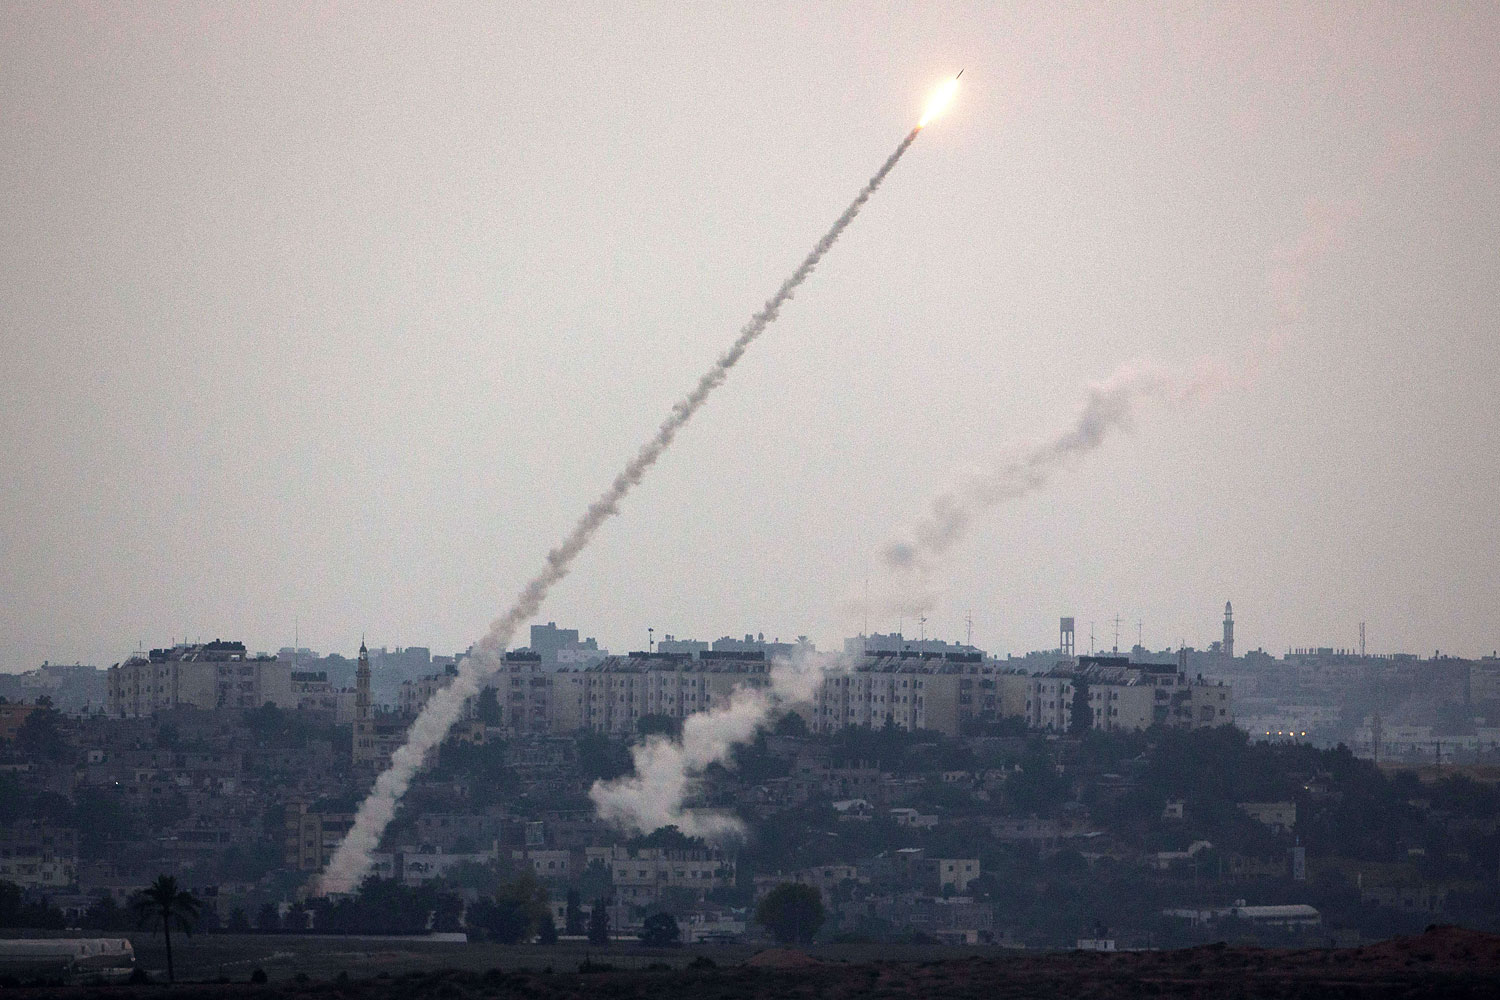 A picture taken from the southern Israeli Gaza border shows a militant rocket being launched from the Gaza strip into Israel, on July 11, 2014.